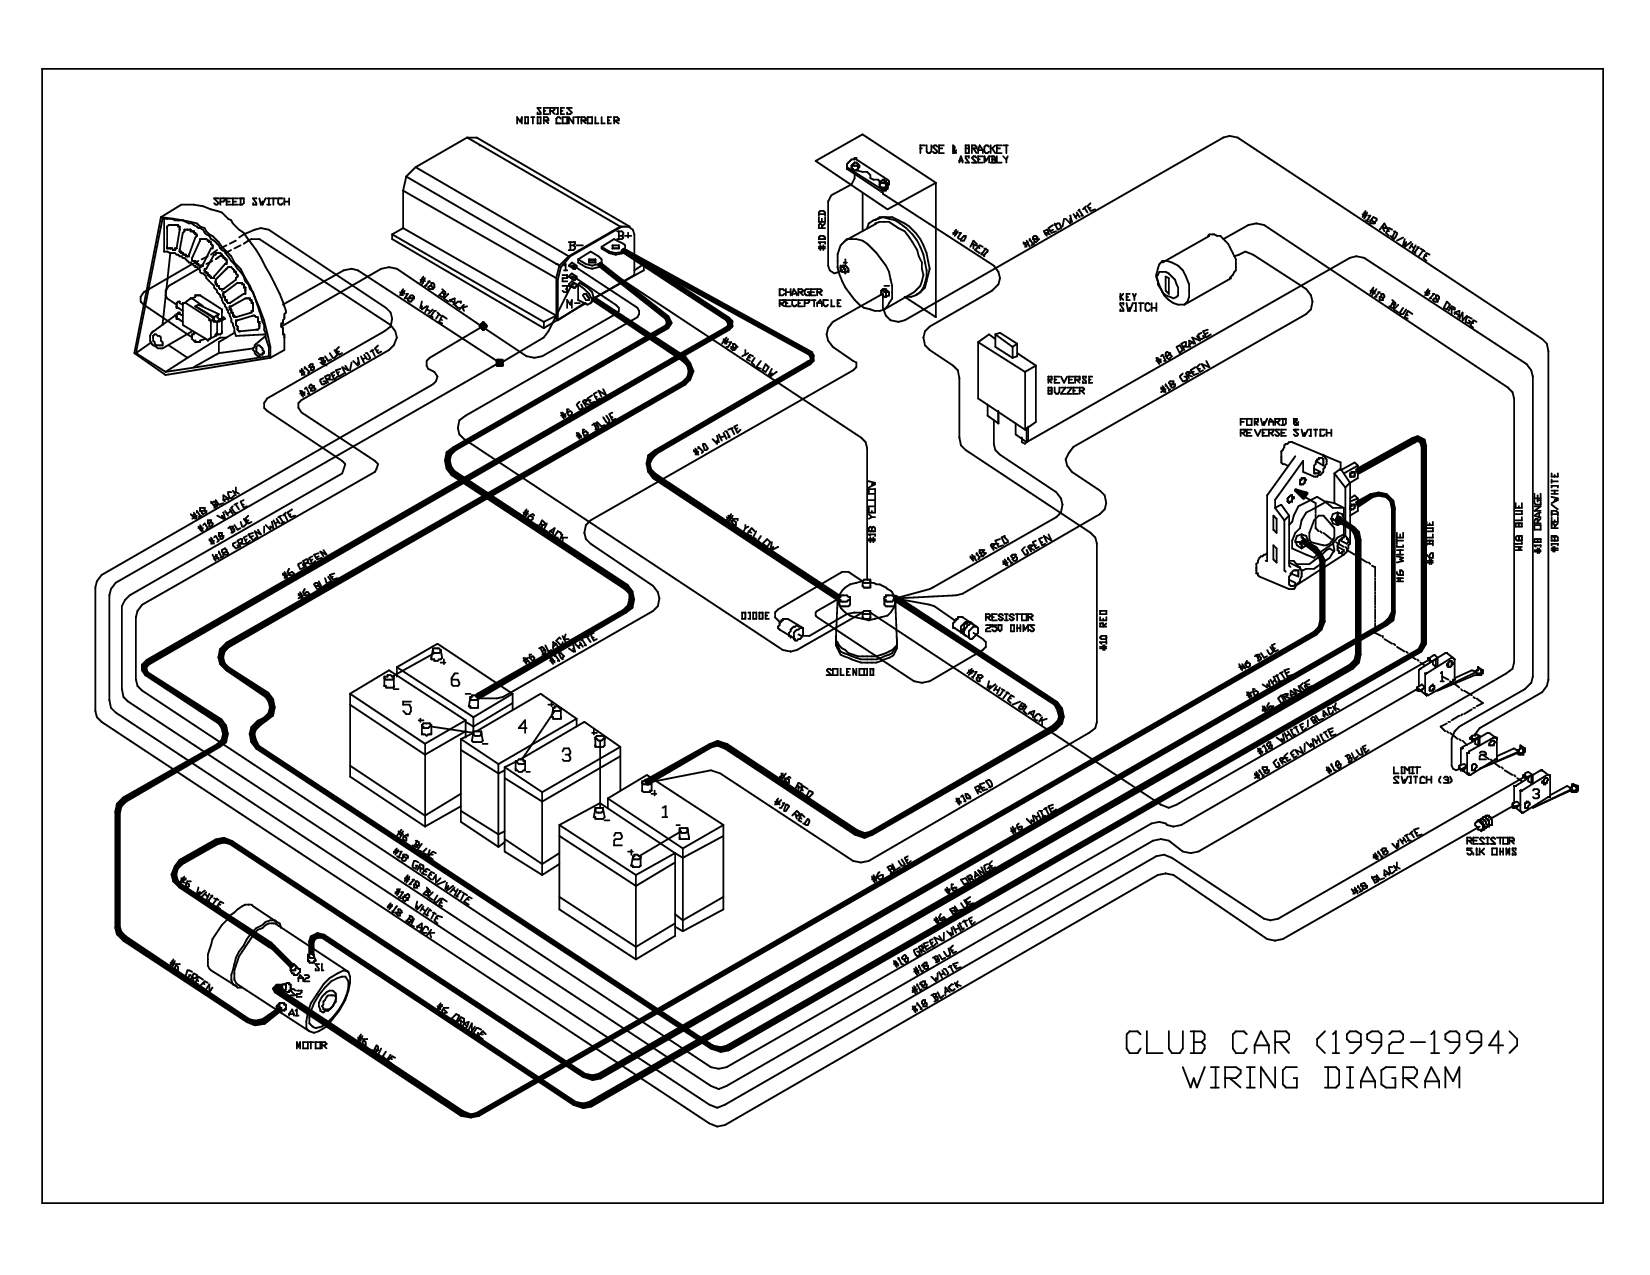 48v ezgo golf cart battery diagram wiring diagrams interval  48v club car wiring diagram #12